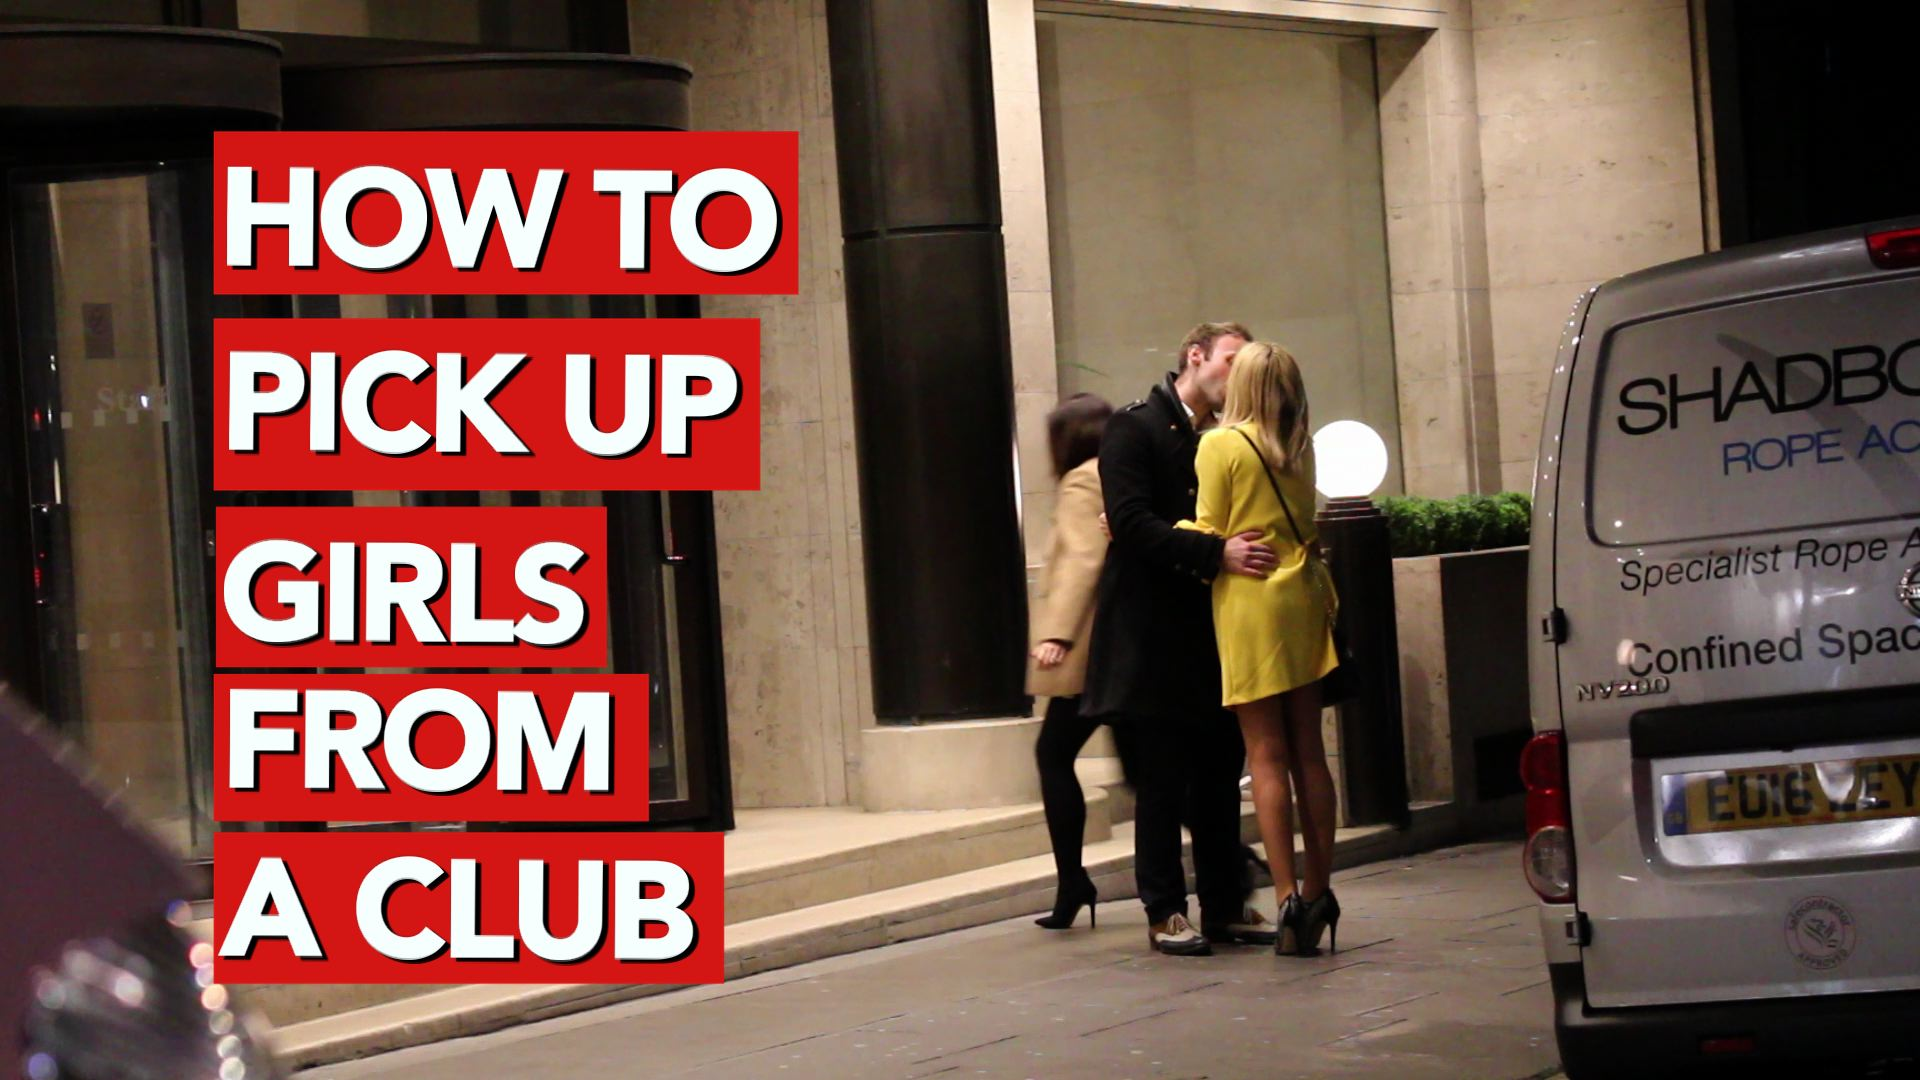 1-How to pick up girls from a club